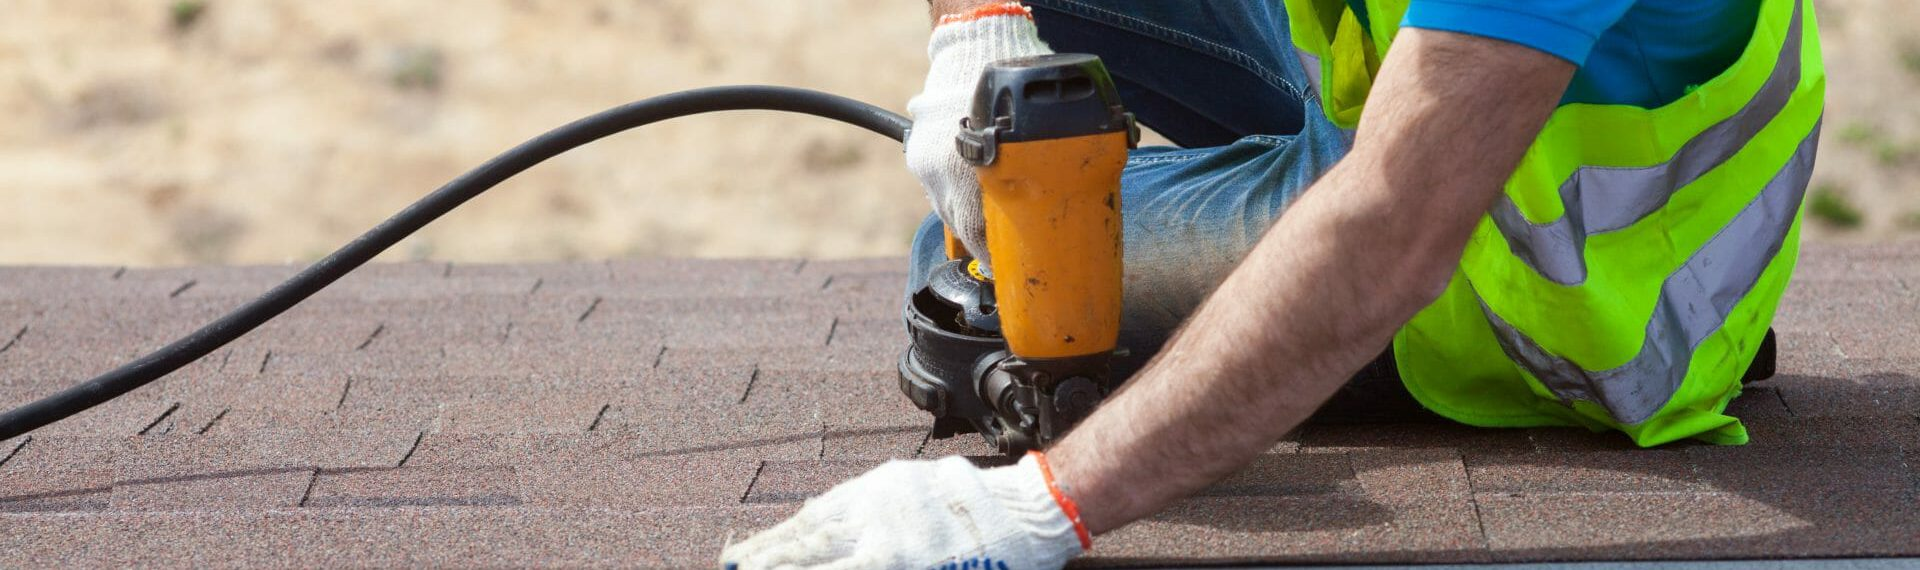 Keeping Safe As A Roofer